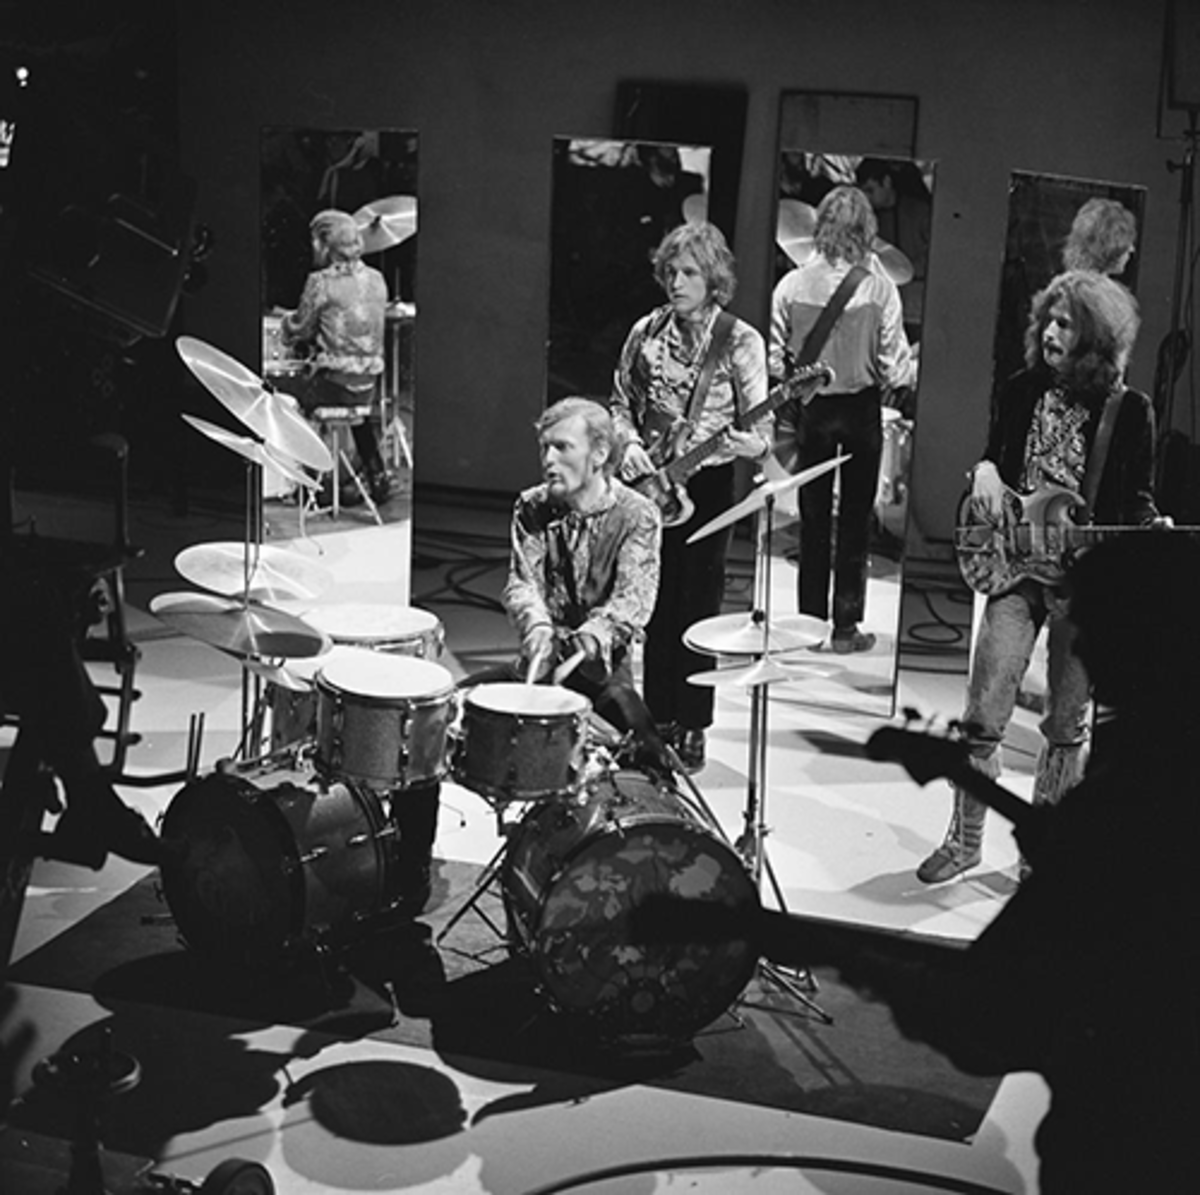 Cream performing on TV in 1968